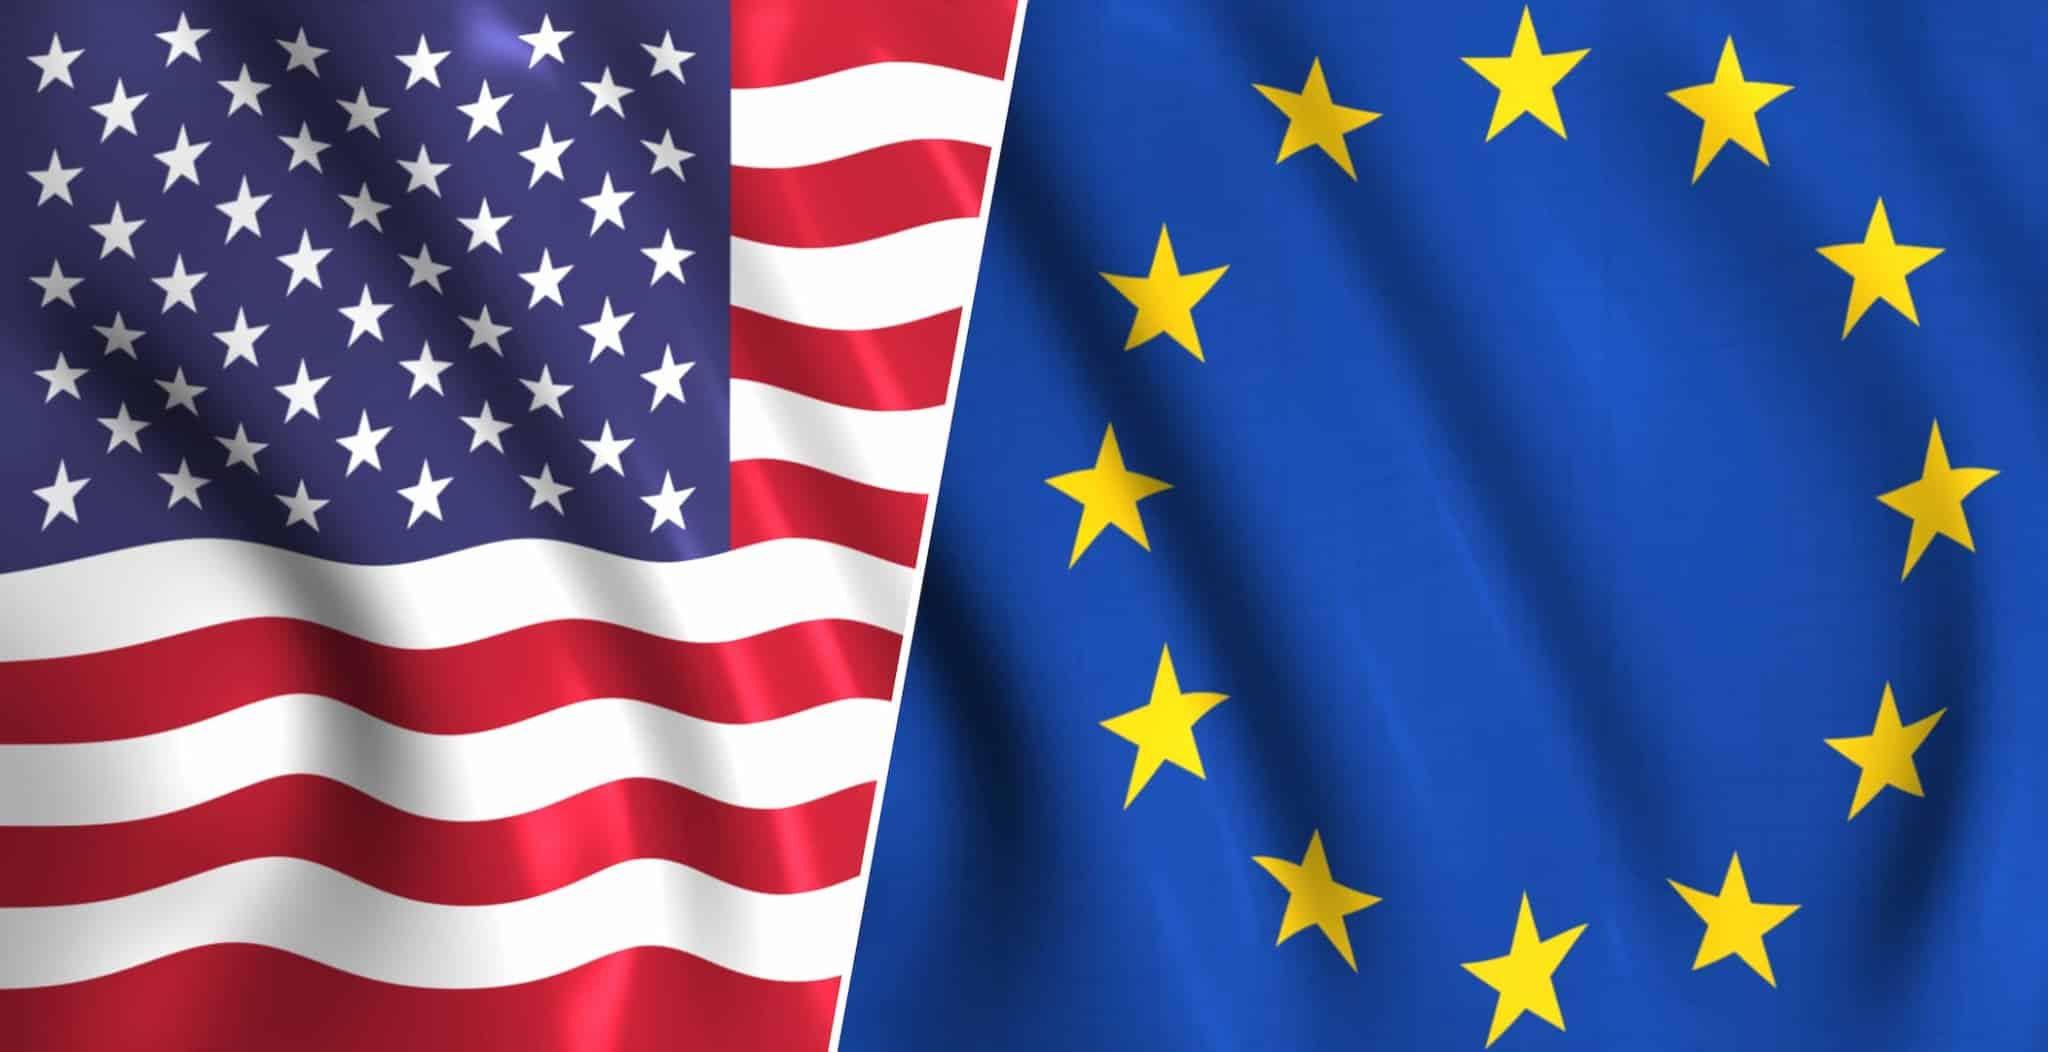 United States Design Patent Law and European Design Protection: An Introduction